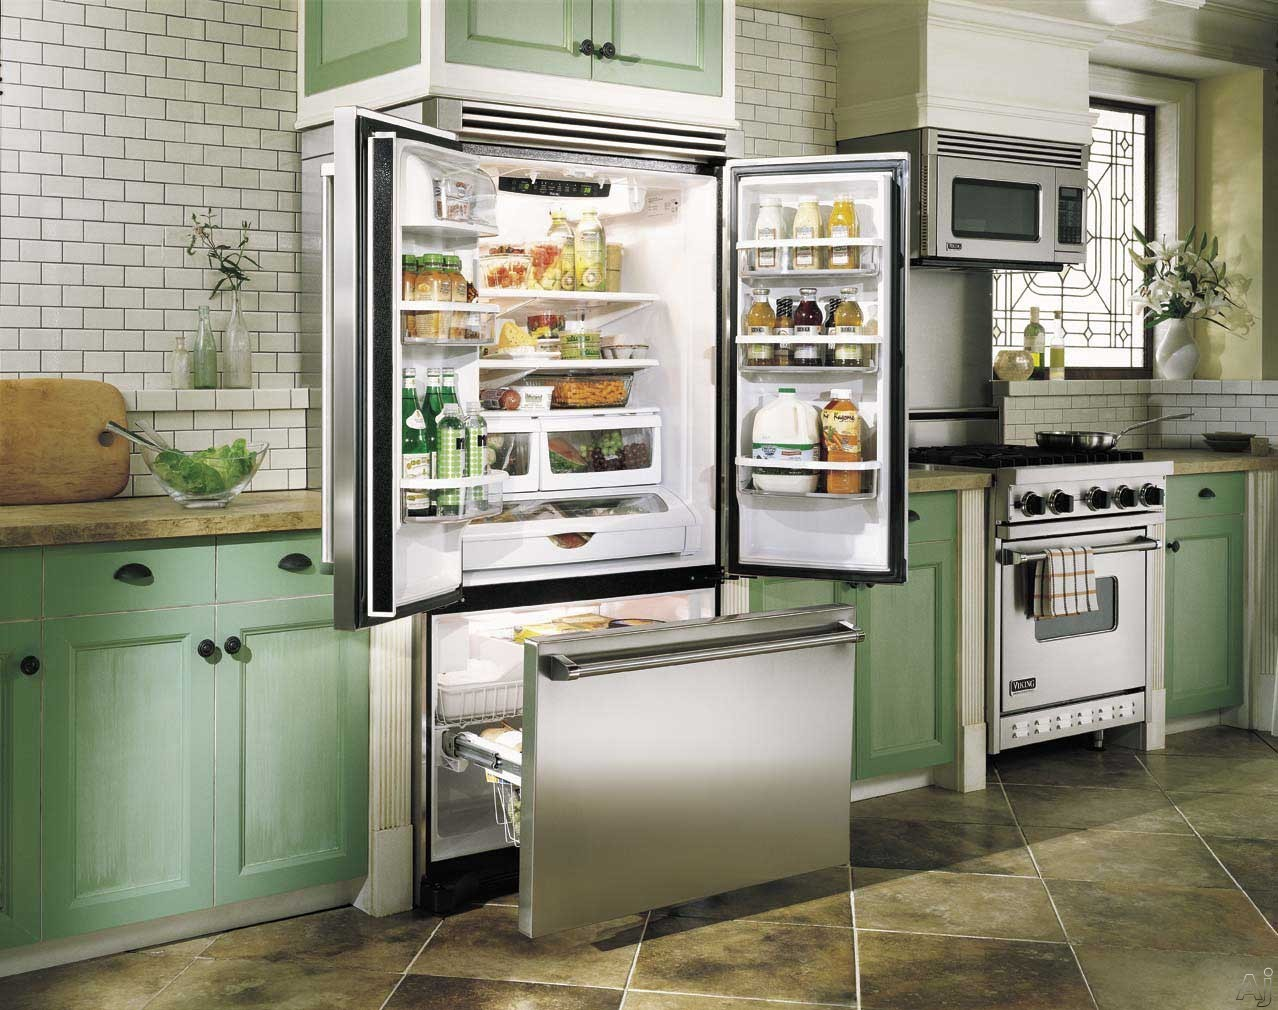 Viking Vcff236ss 21 8 Cu Ft Counter Depth French Door